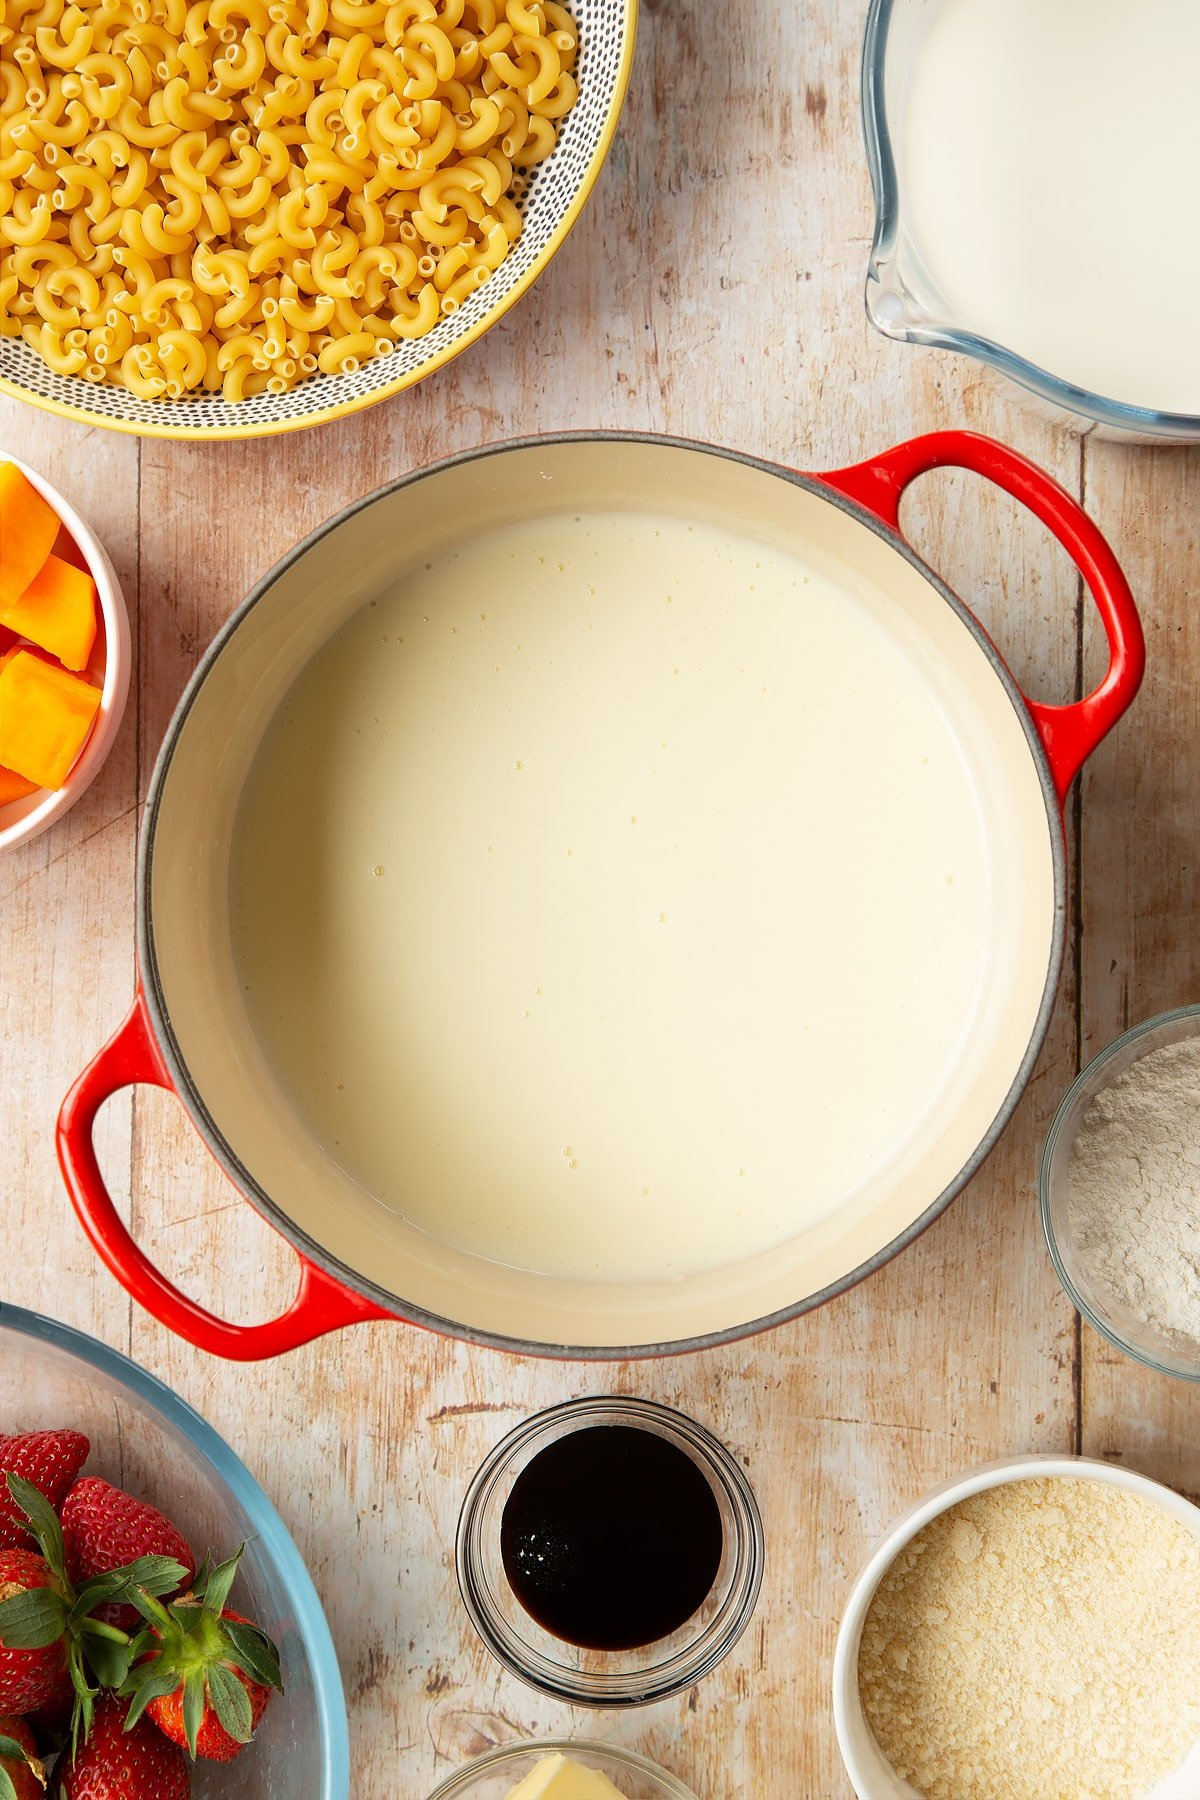 A saucepan containing a white sauce made with milk, butter and flour. The pan is surrounded by ingredients for strawberry pasta.